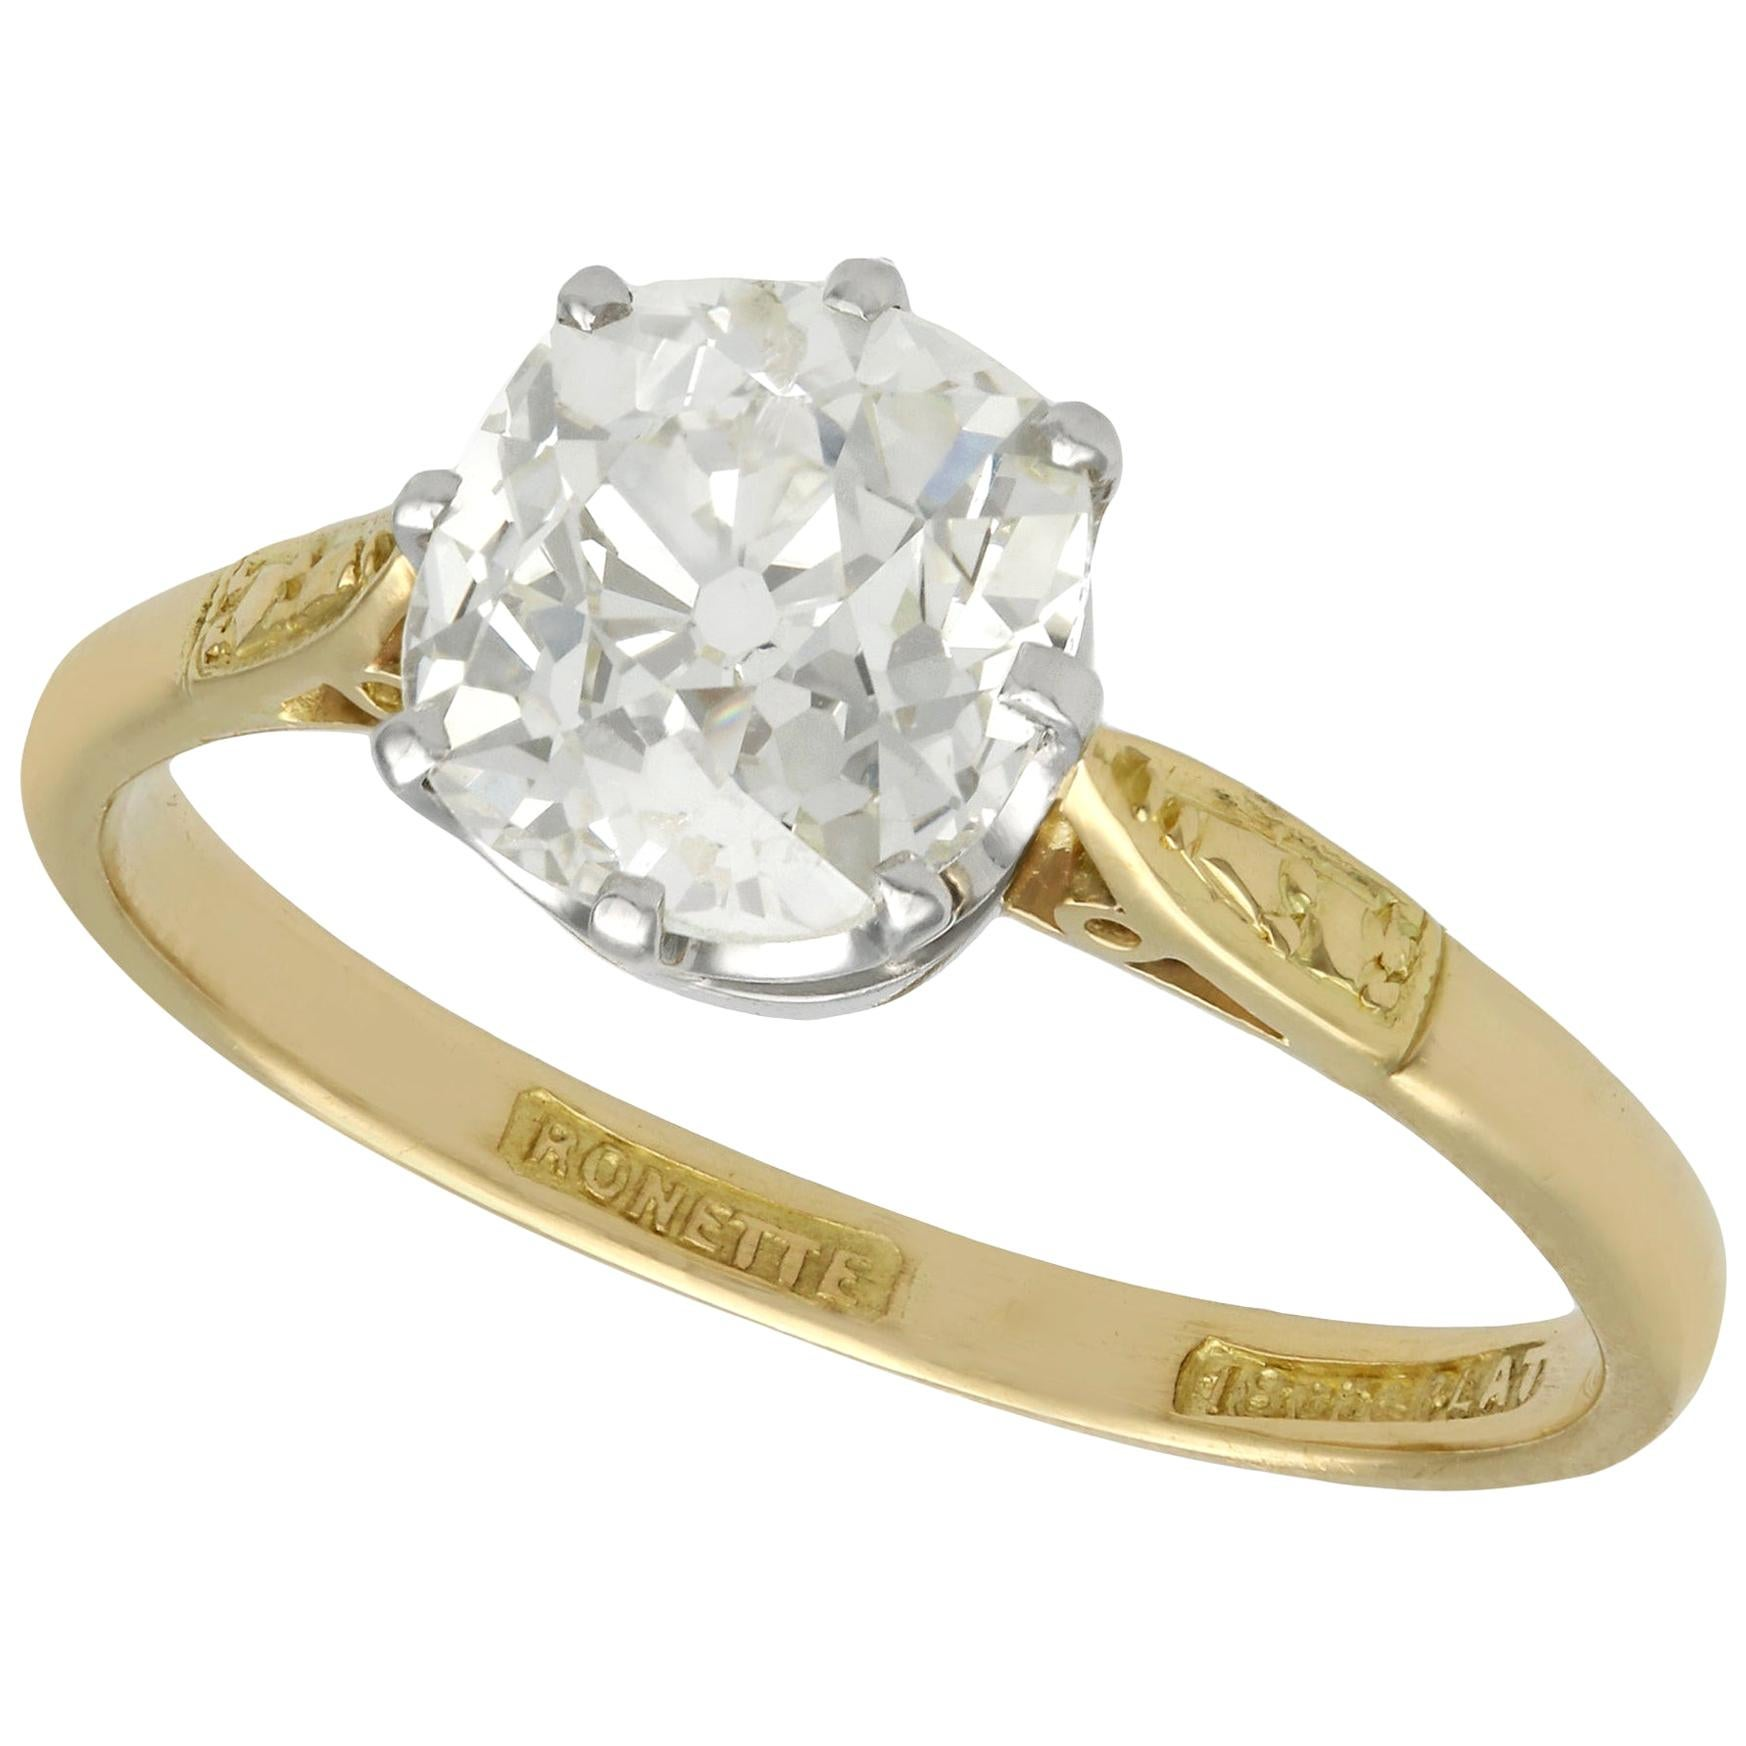 1.96 Carat Diamond and Yellow Gold Engagement Ring